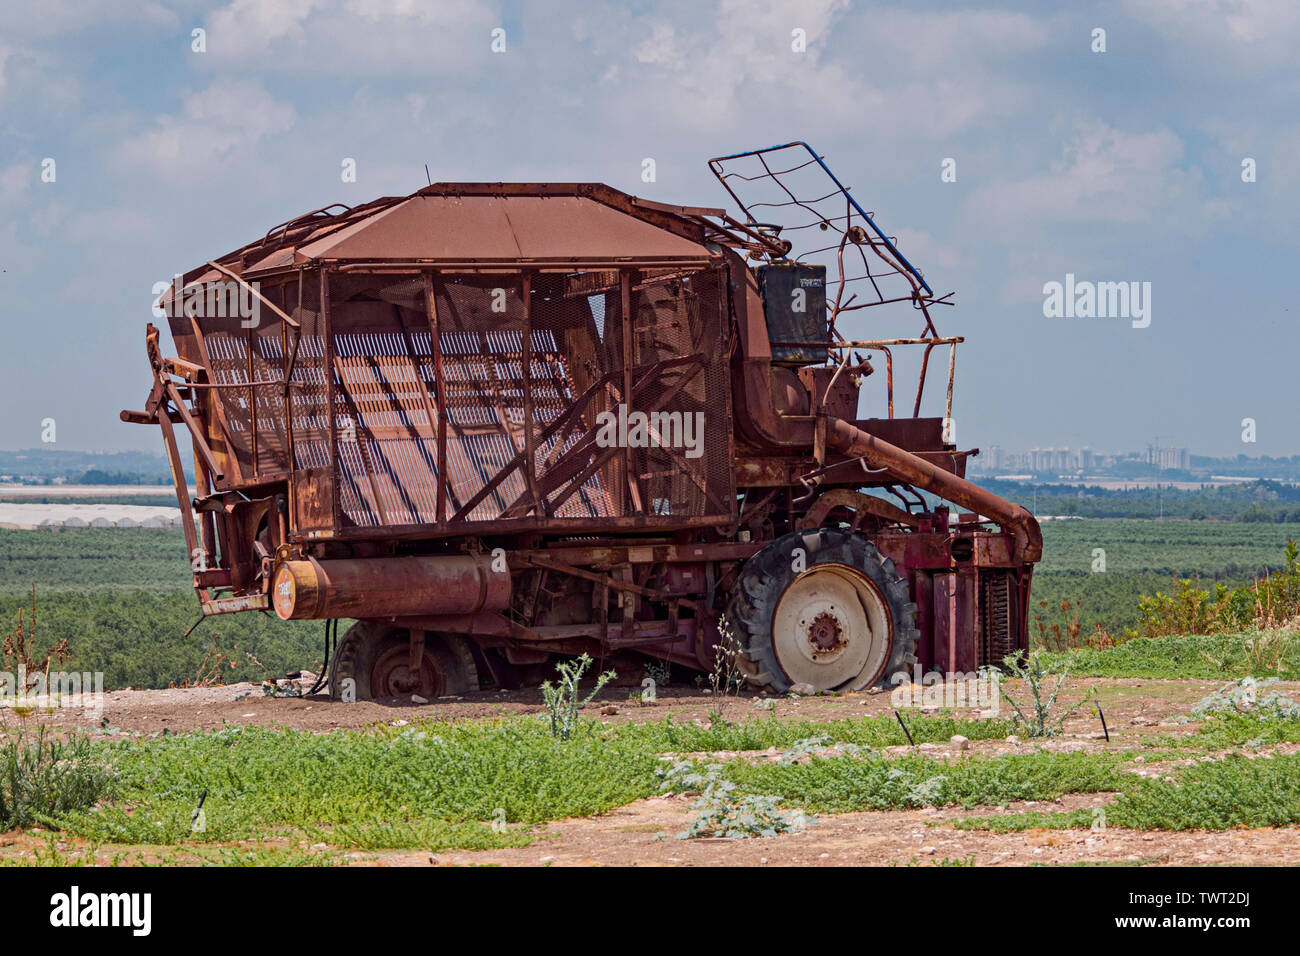 a broken down rusty old cotton picking machine sits above modern fields and greenhouses in israel with a palestinian city in the background - Stock Image